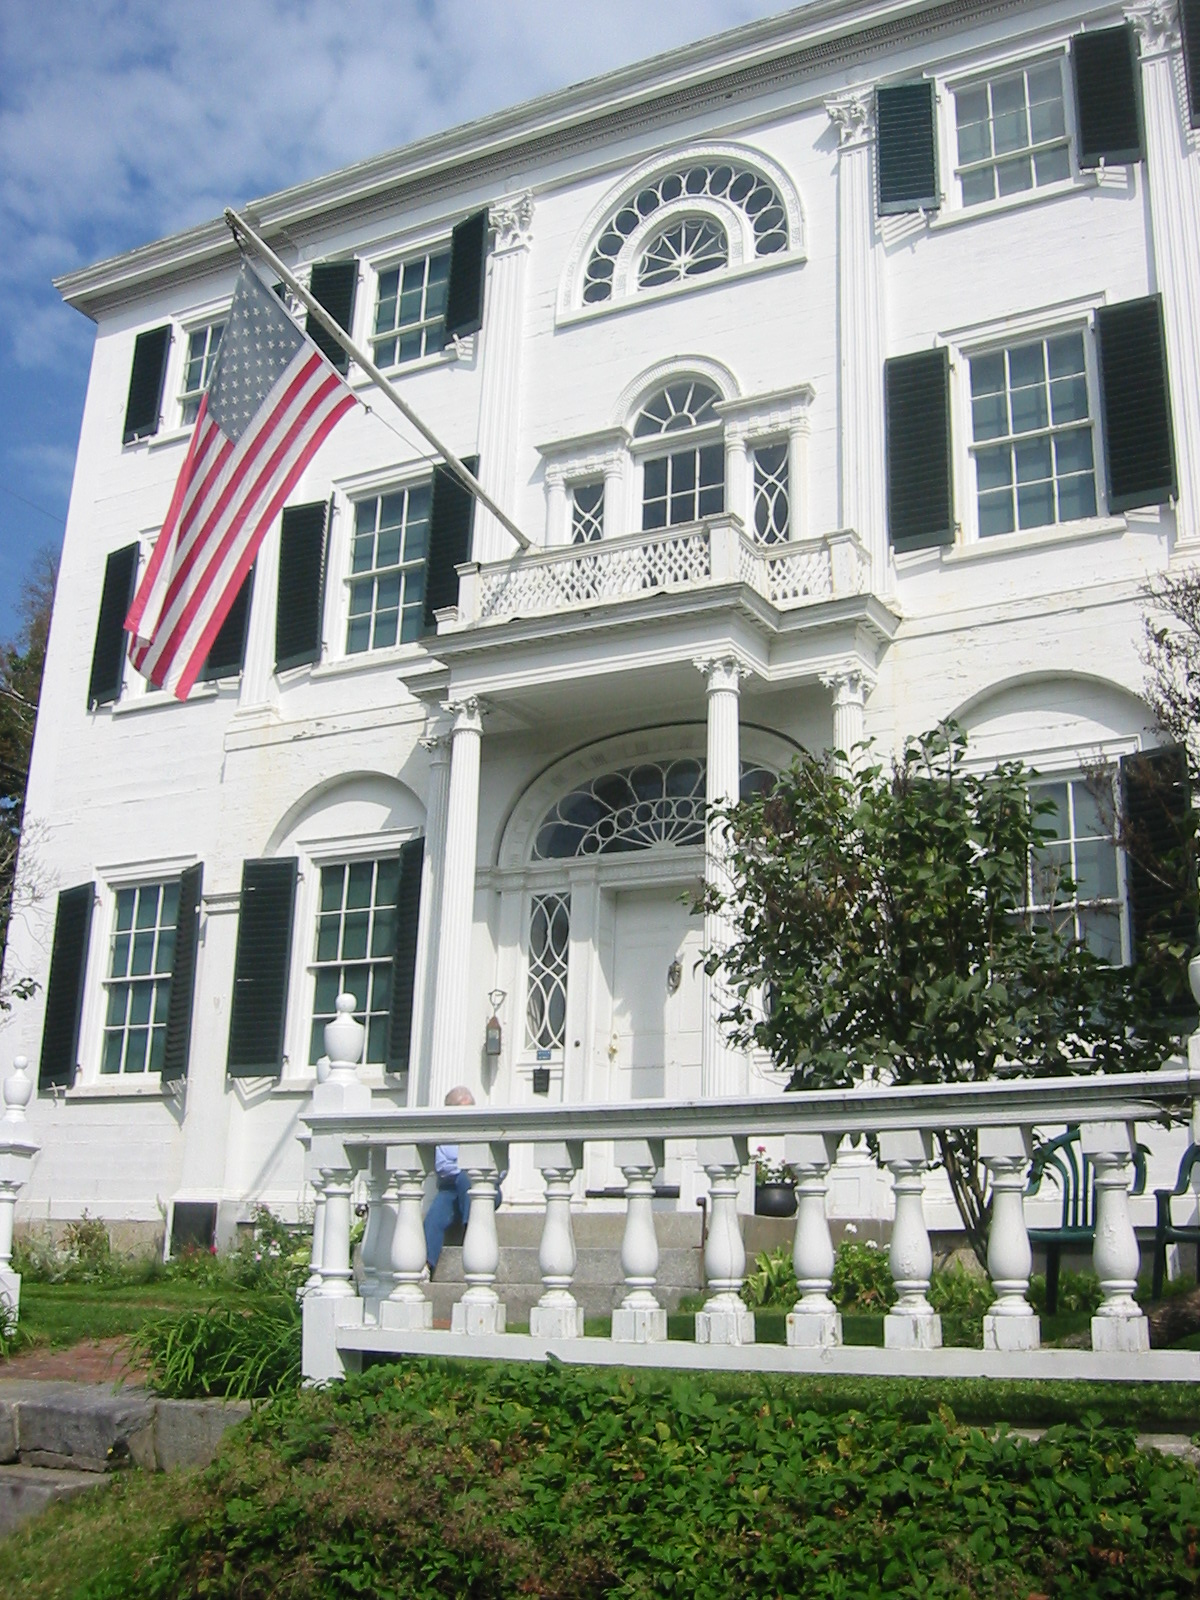 Looking up at Nickels-Sortwell House from Main Street